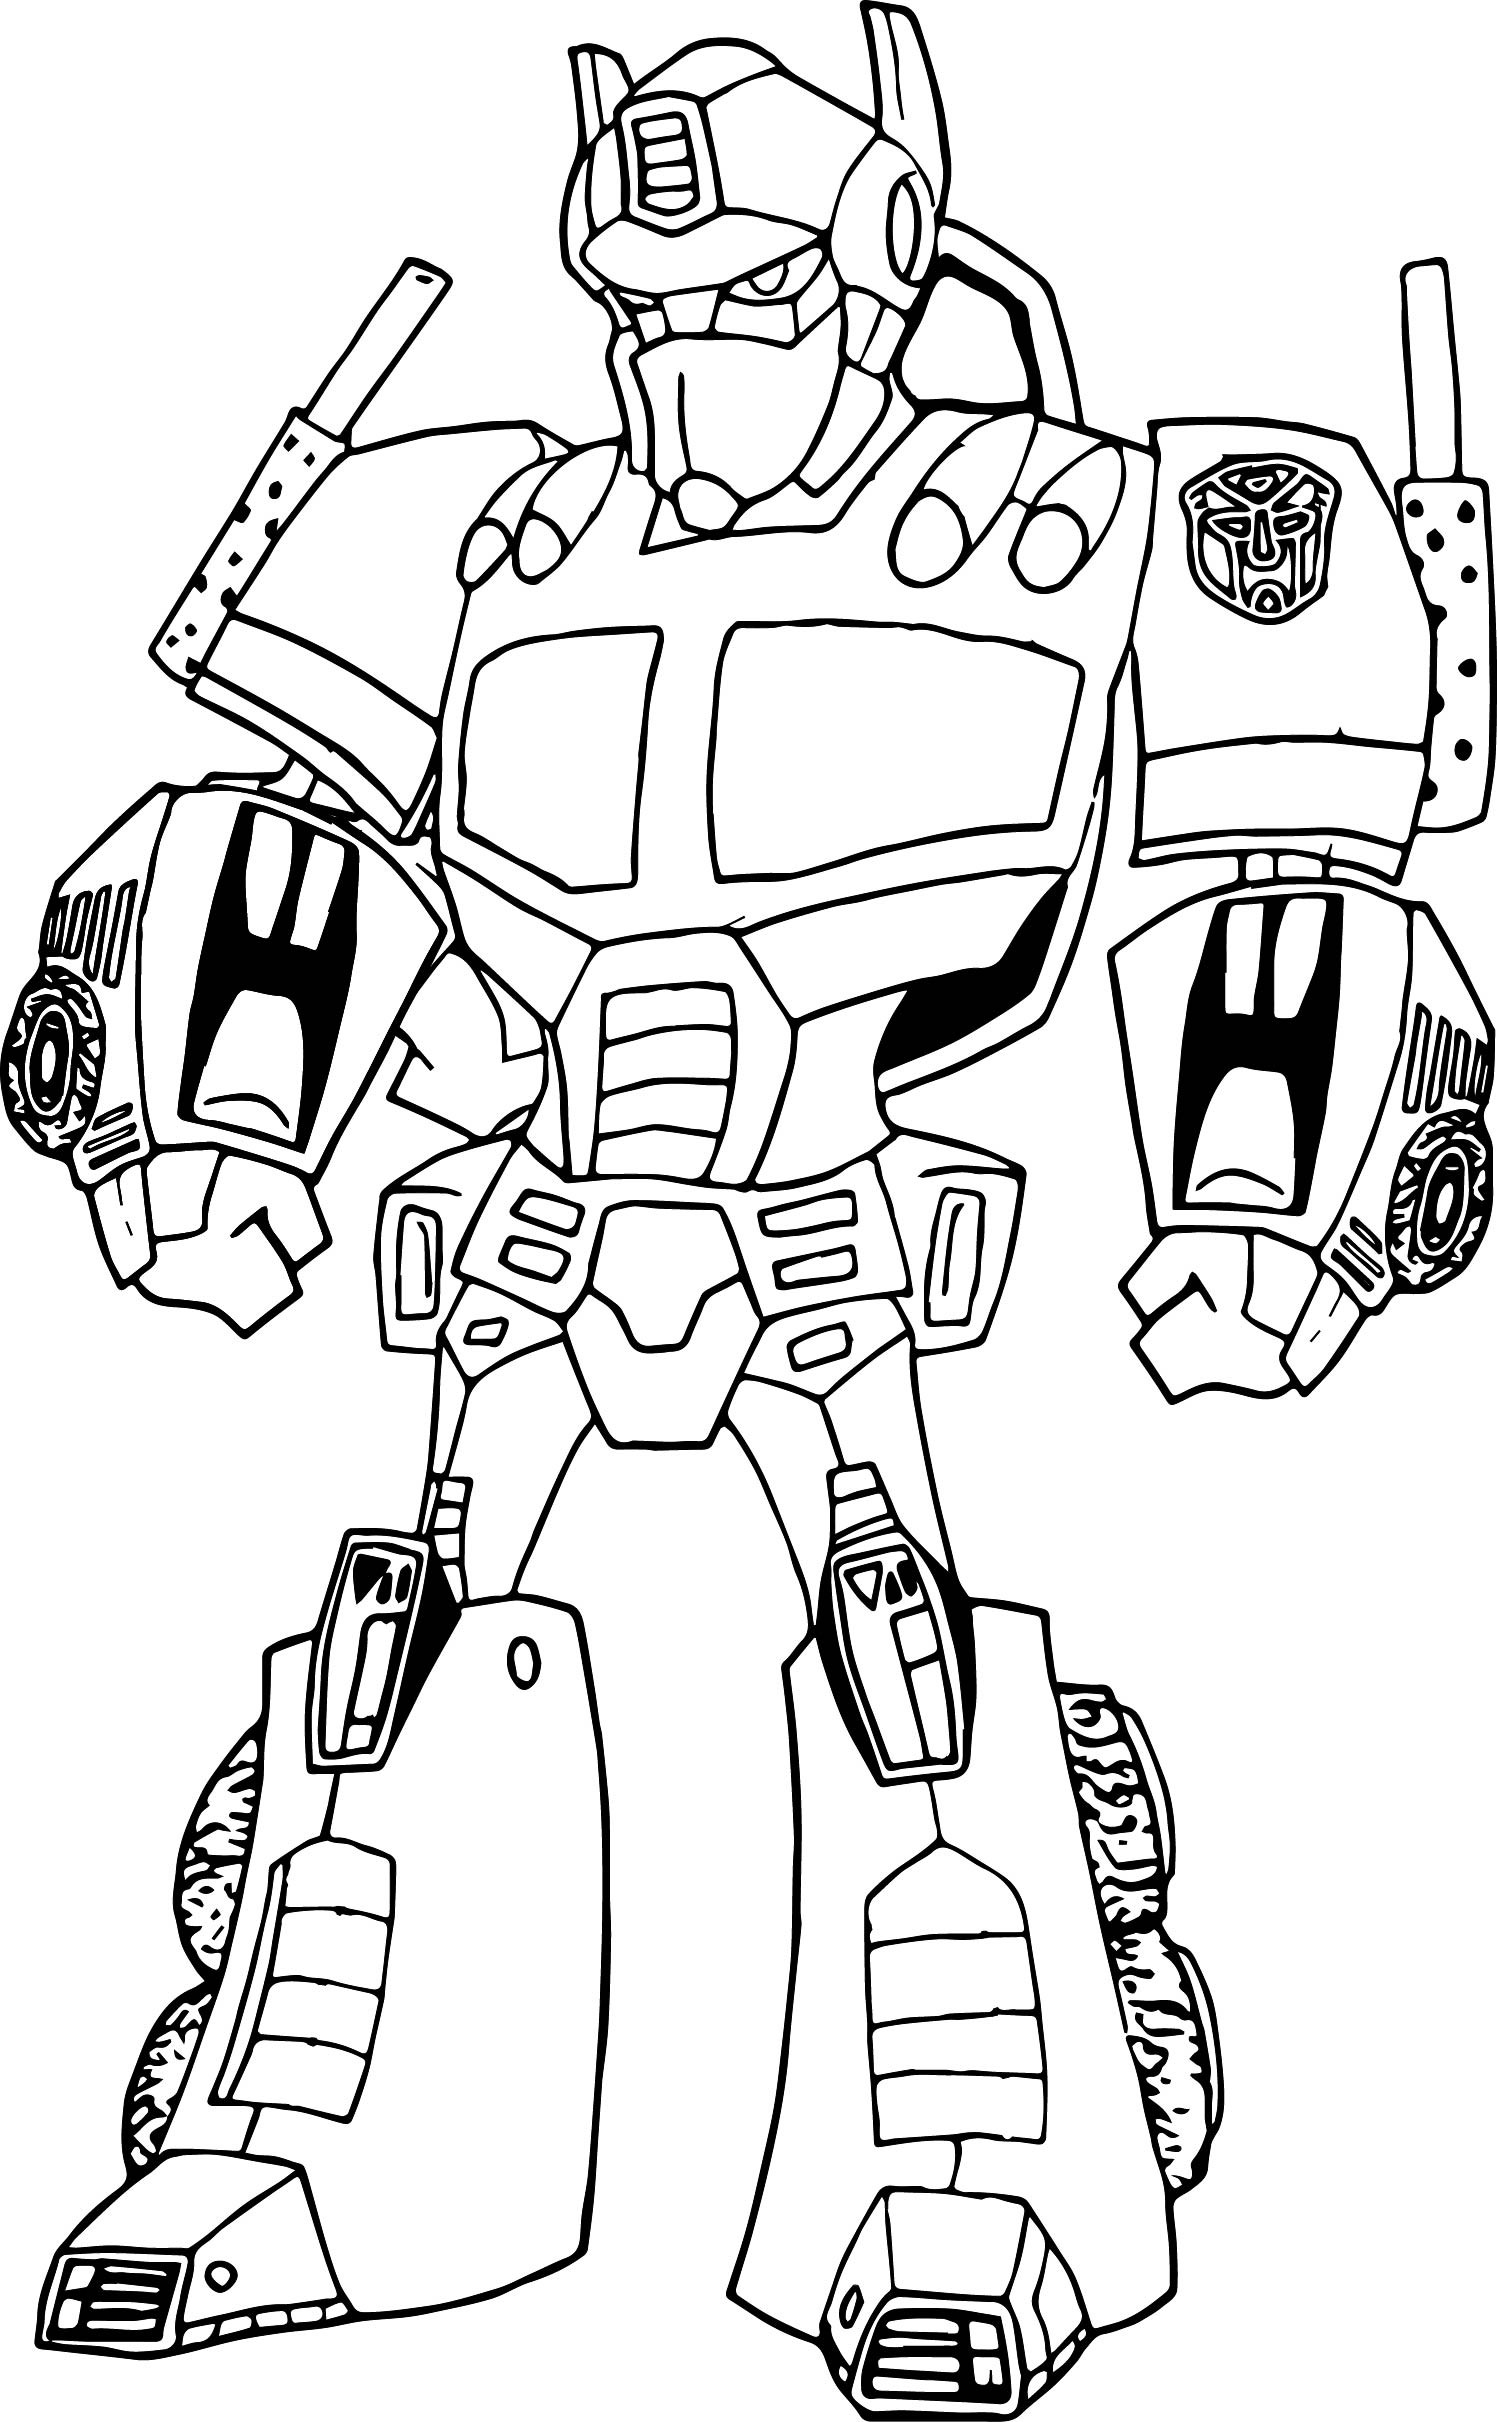 robot colouring pictures robot coloring pages for students educative printable robot colouring pictures